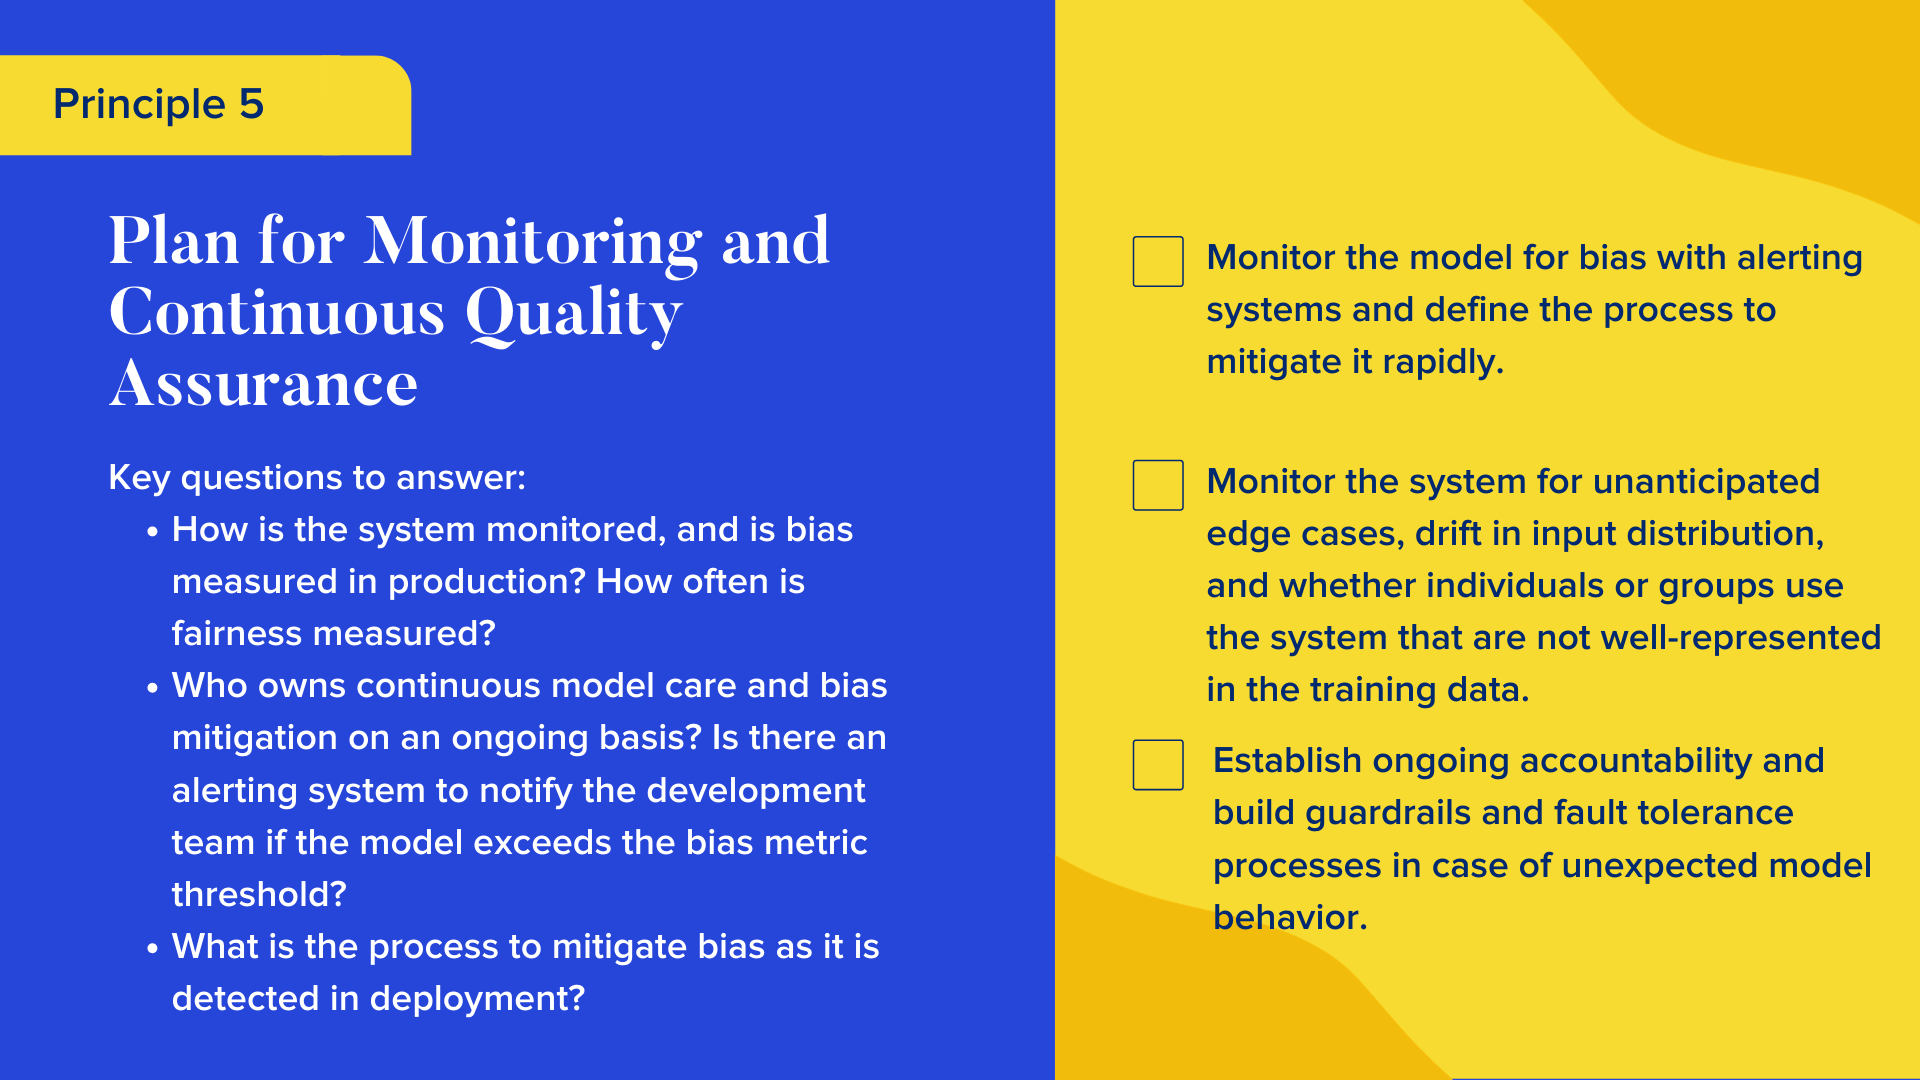 Key questions to answer  How is the system monitored, and is bias measured in production? How often is fairness measured? Who owns continuous model care and bias mitigation on an ongoing basis? Is there an alerting system to notify the development team if the model exceeds the bias metric threshold? What is the process to mitigate bias as it is detected in deployment?  Checklist  Monitor the model for bias with alerting systems and define the process to mitigate it rapidly. Monitor the system for unanticipated edge cases, drift in input distribution, and whether individuals or groups use the system that are not well-represented in the training data. Establish ongoing accountability and build guardrails and fault tolerance processes in case of unexpected model behavior.